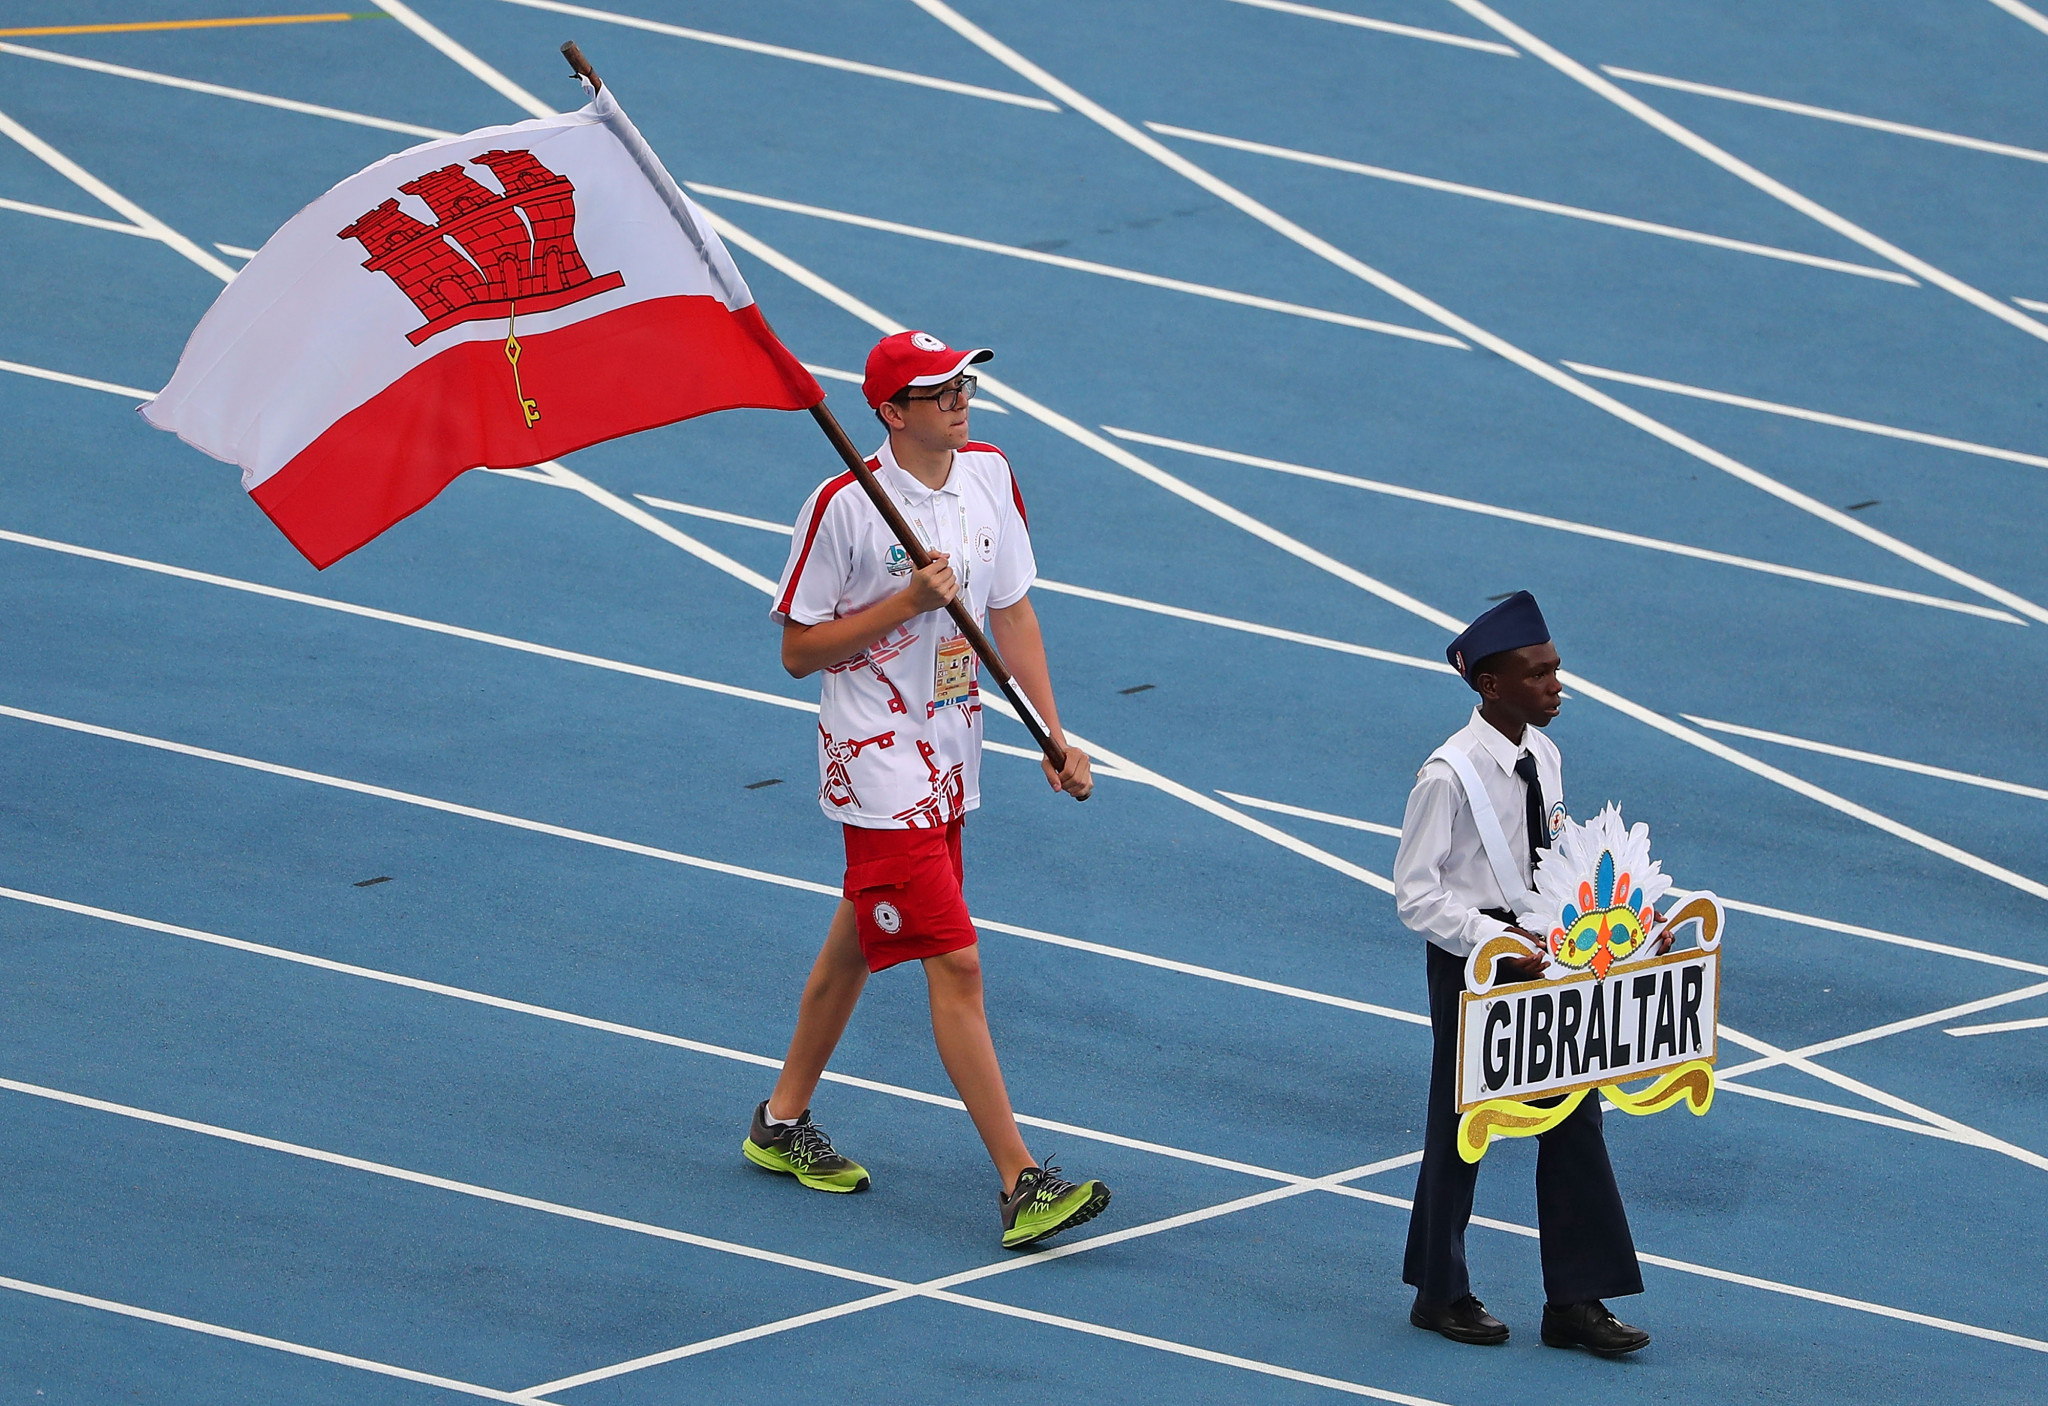 Gibraltar has submitted a bid to host the Commonwealth Youth Games ©Getty Images